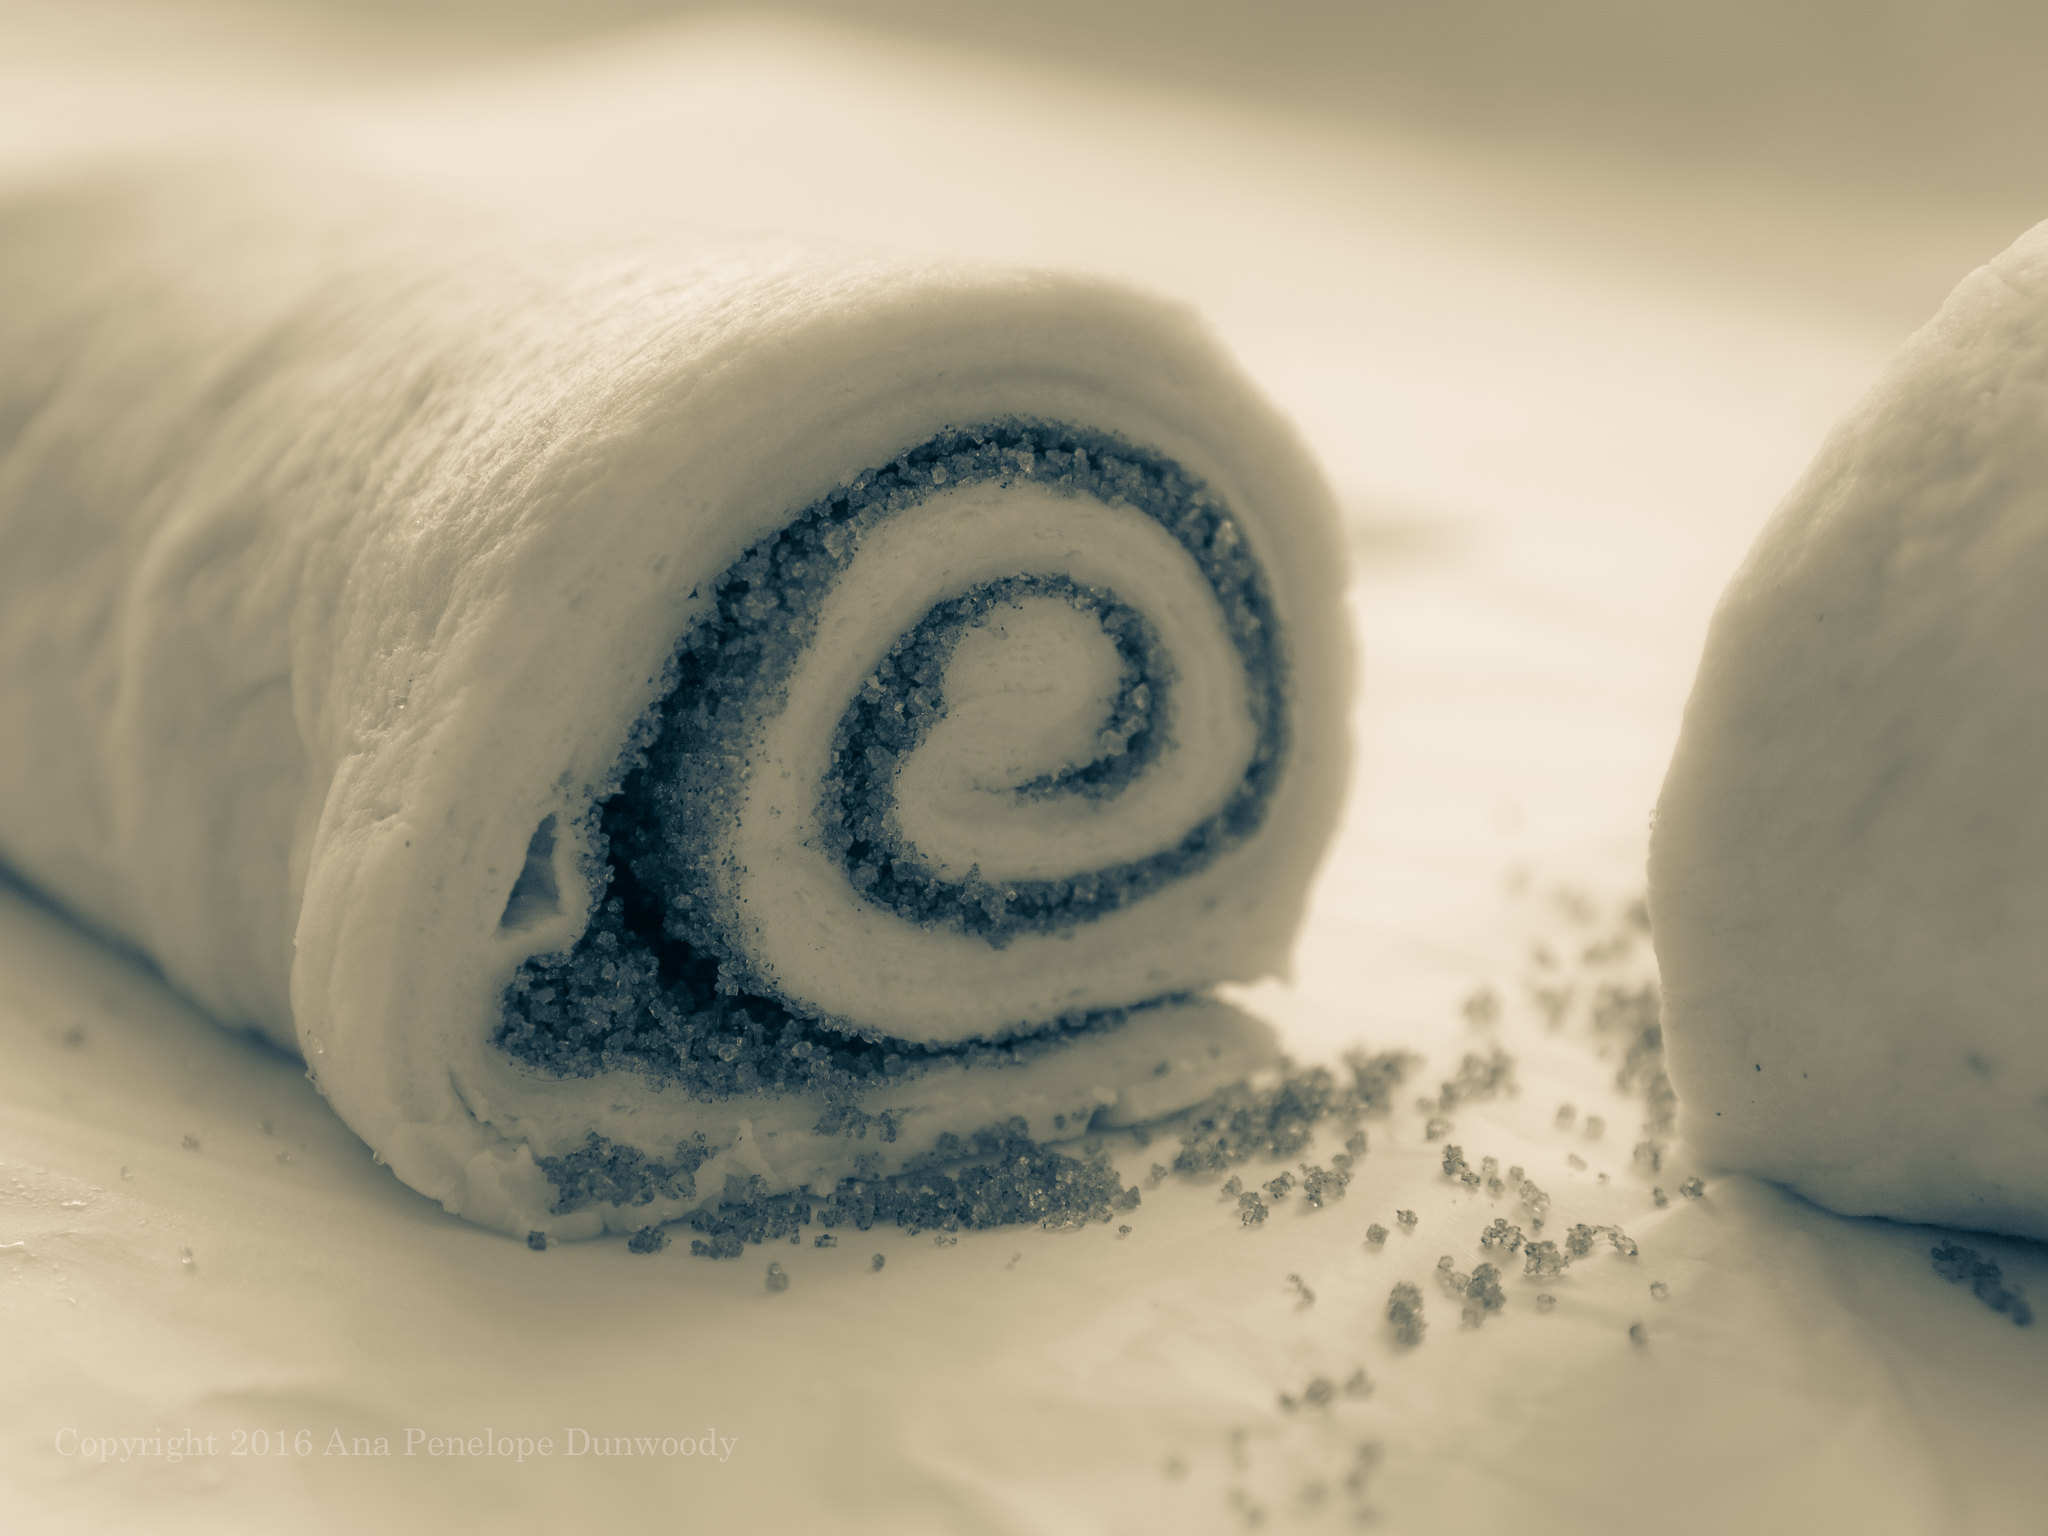 Making Cinnamon Rolls - Cut the Rolled Dough